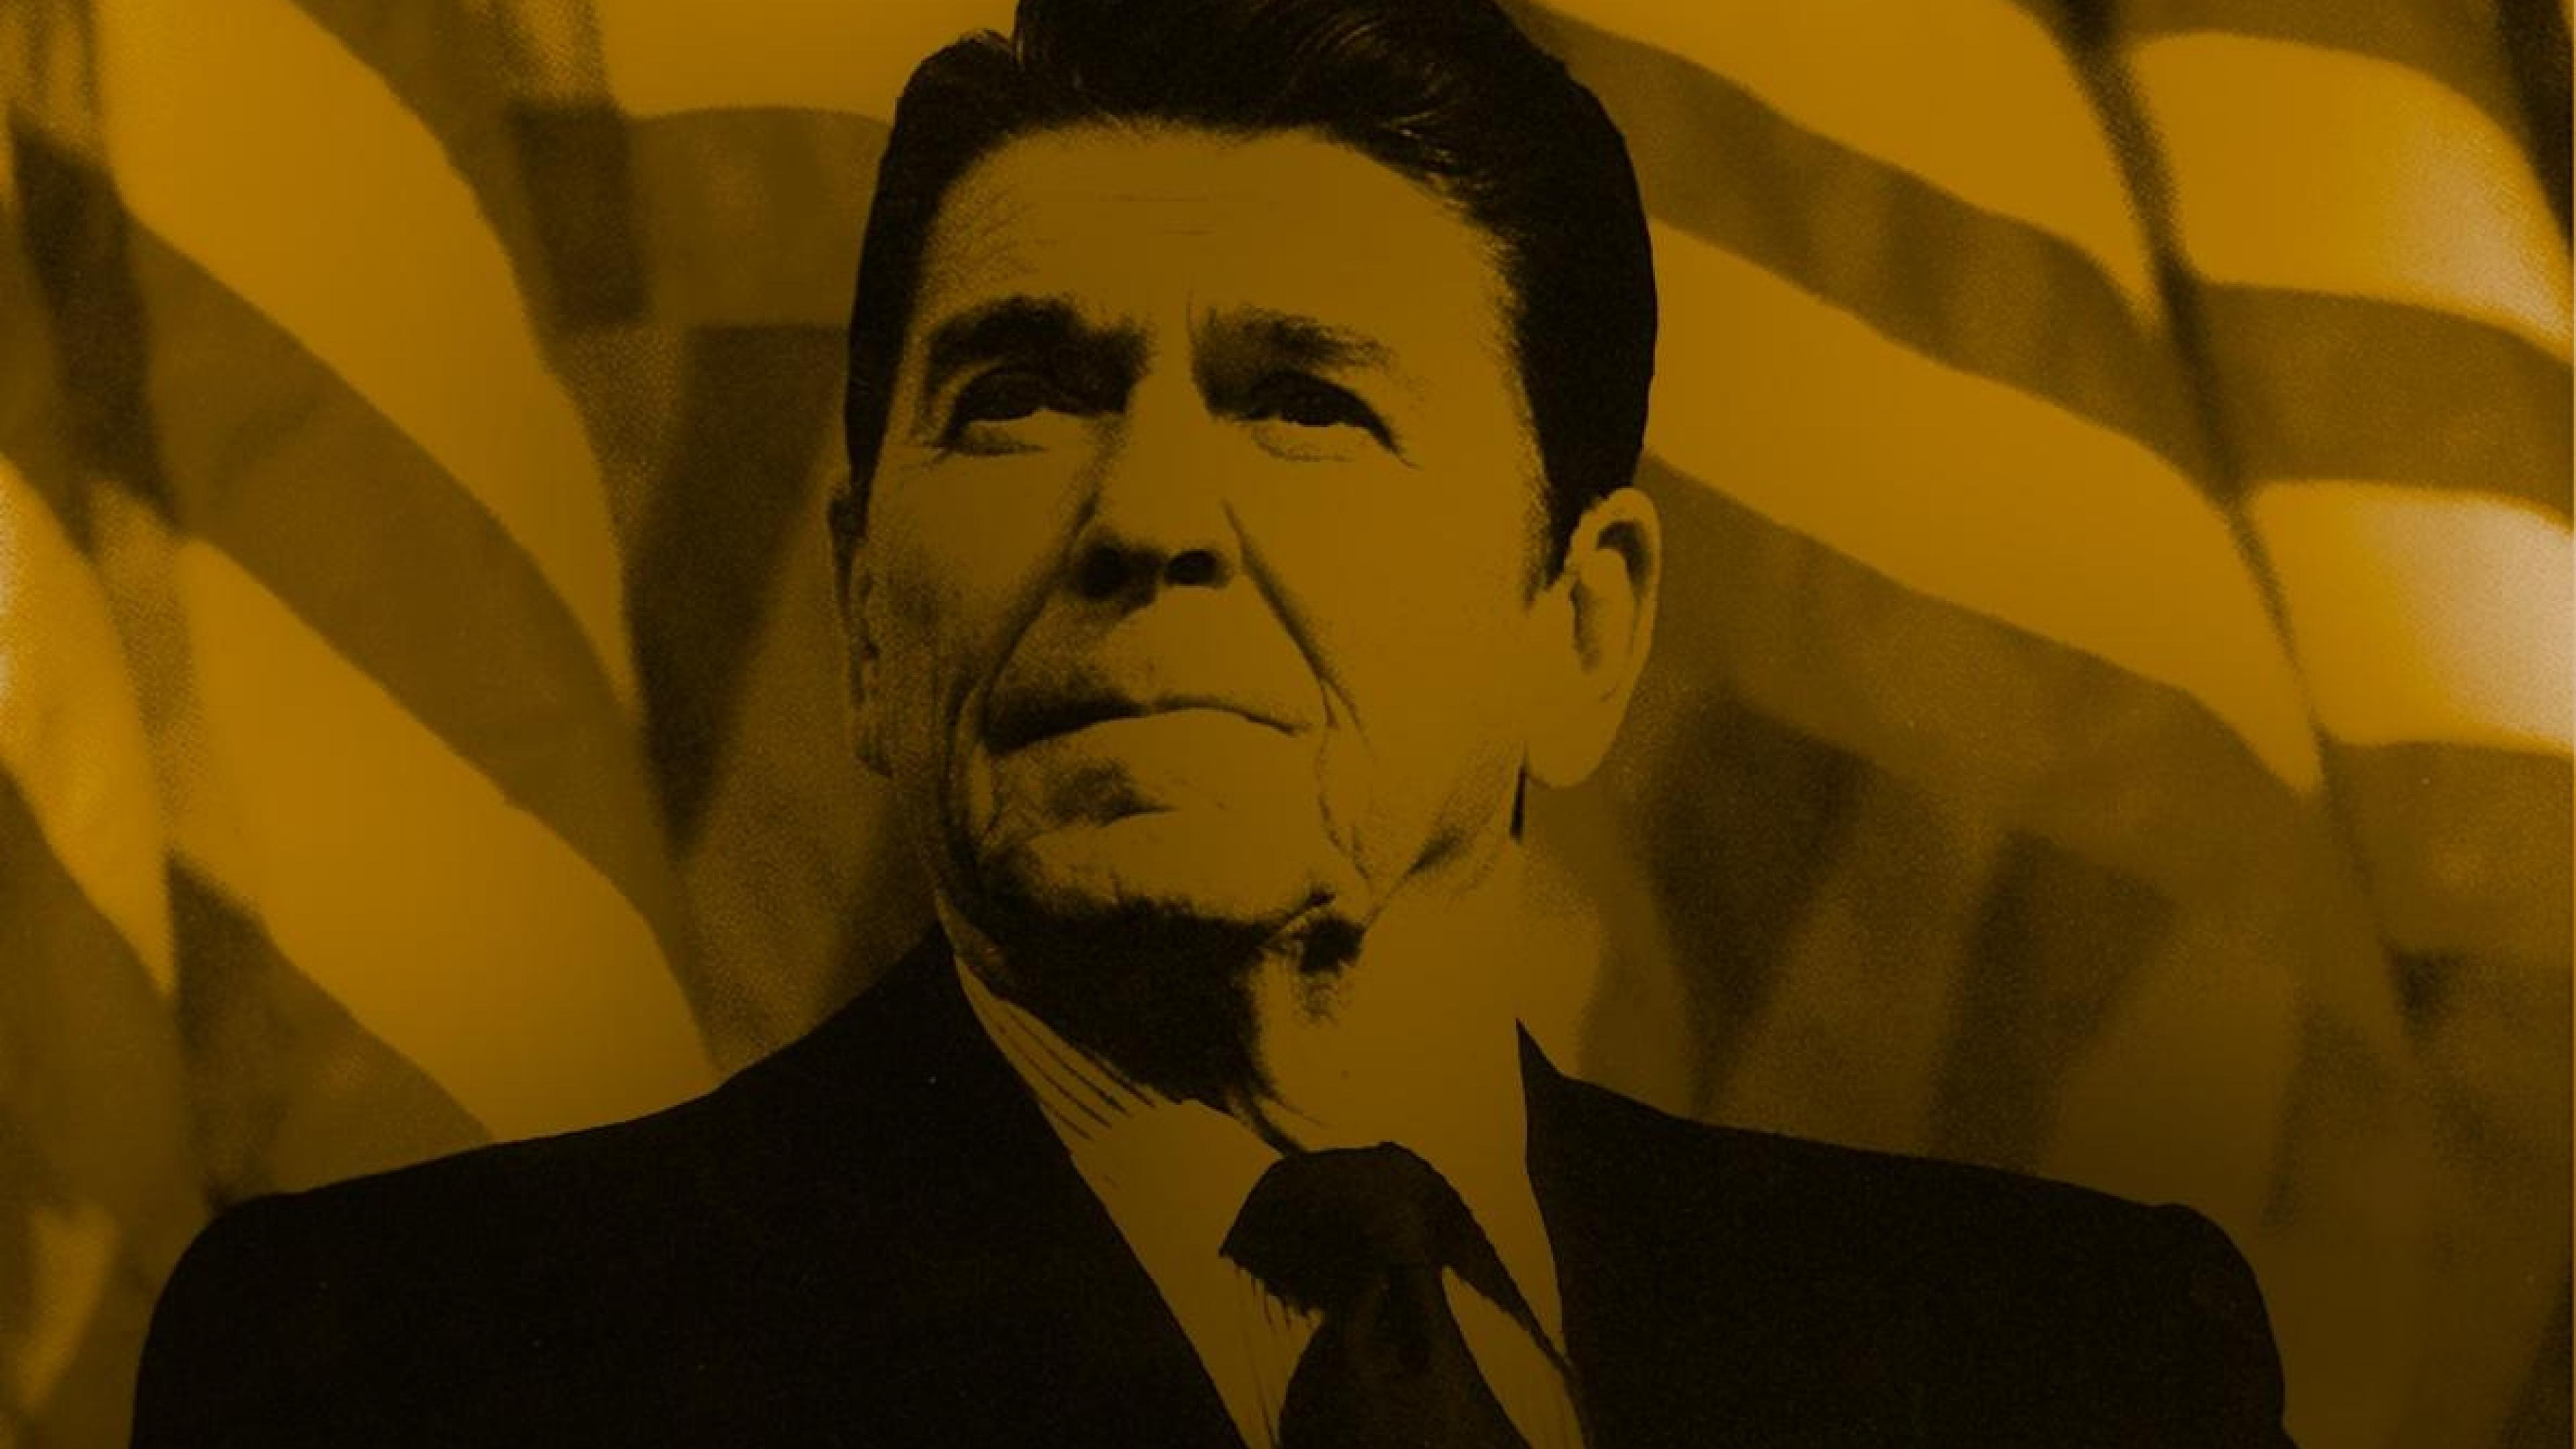 Men Ronald reagan HD Wallpapers, Desktop Backgrounds, Mobile